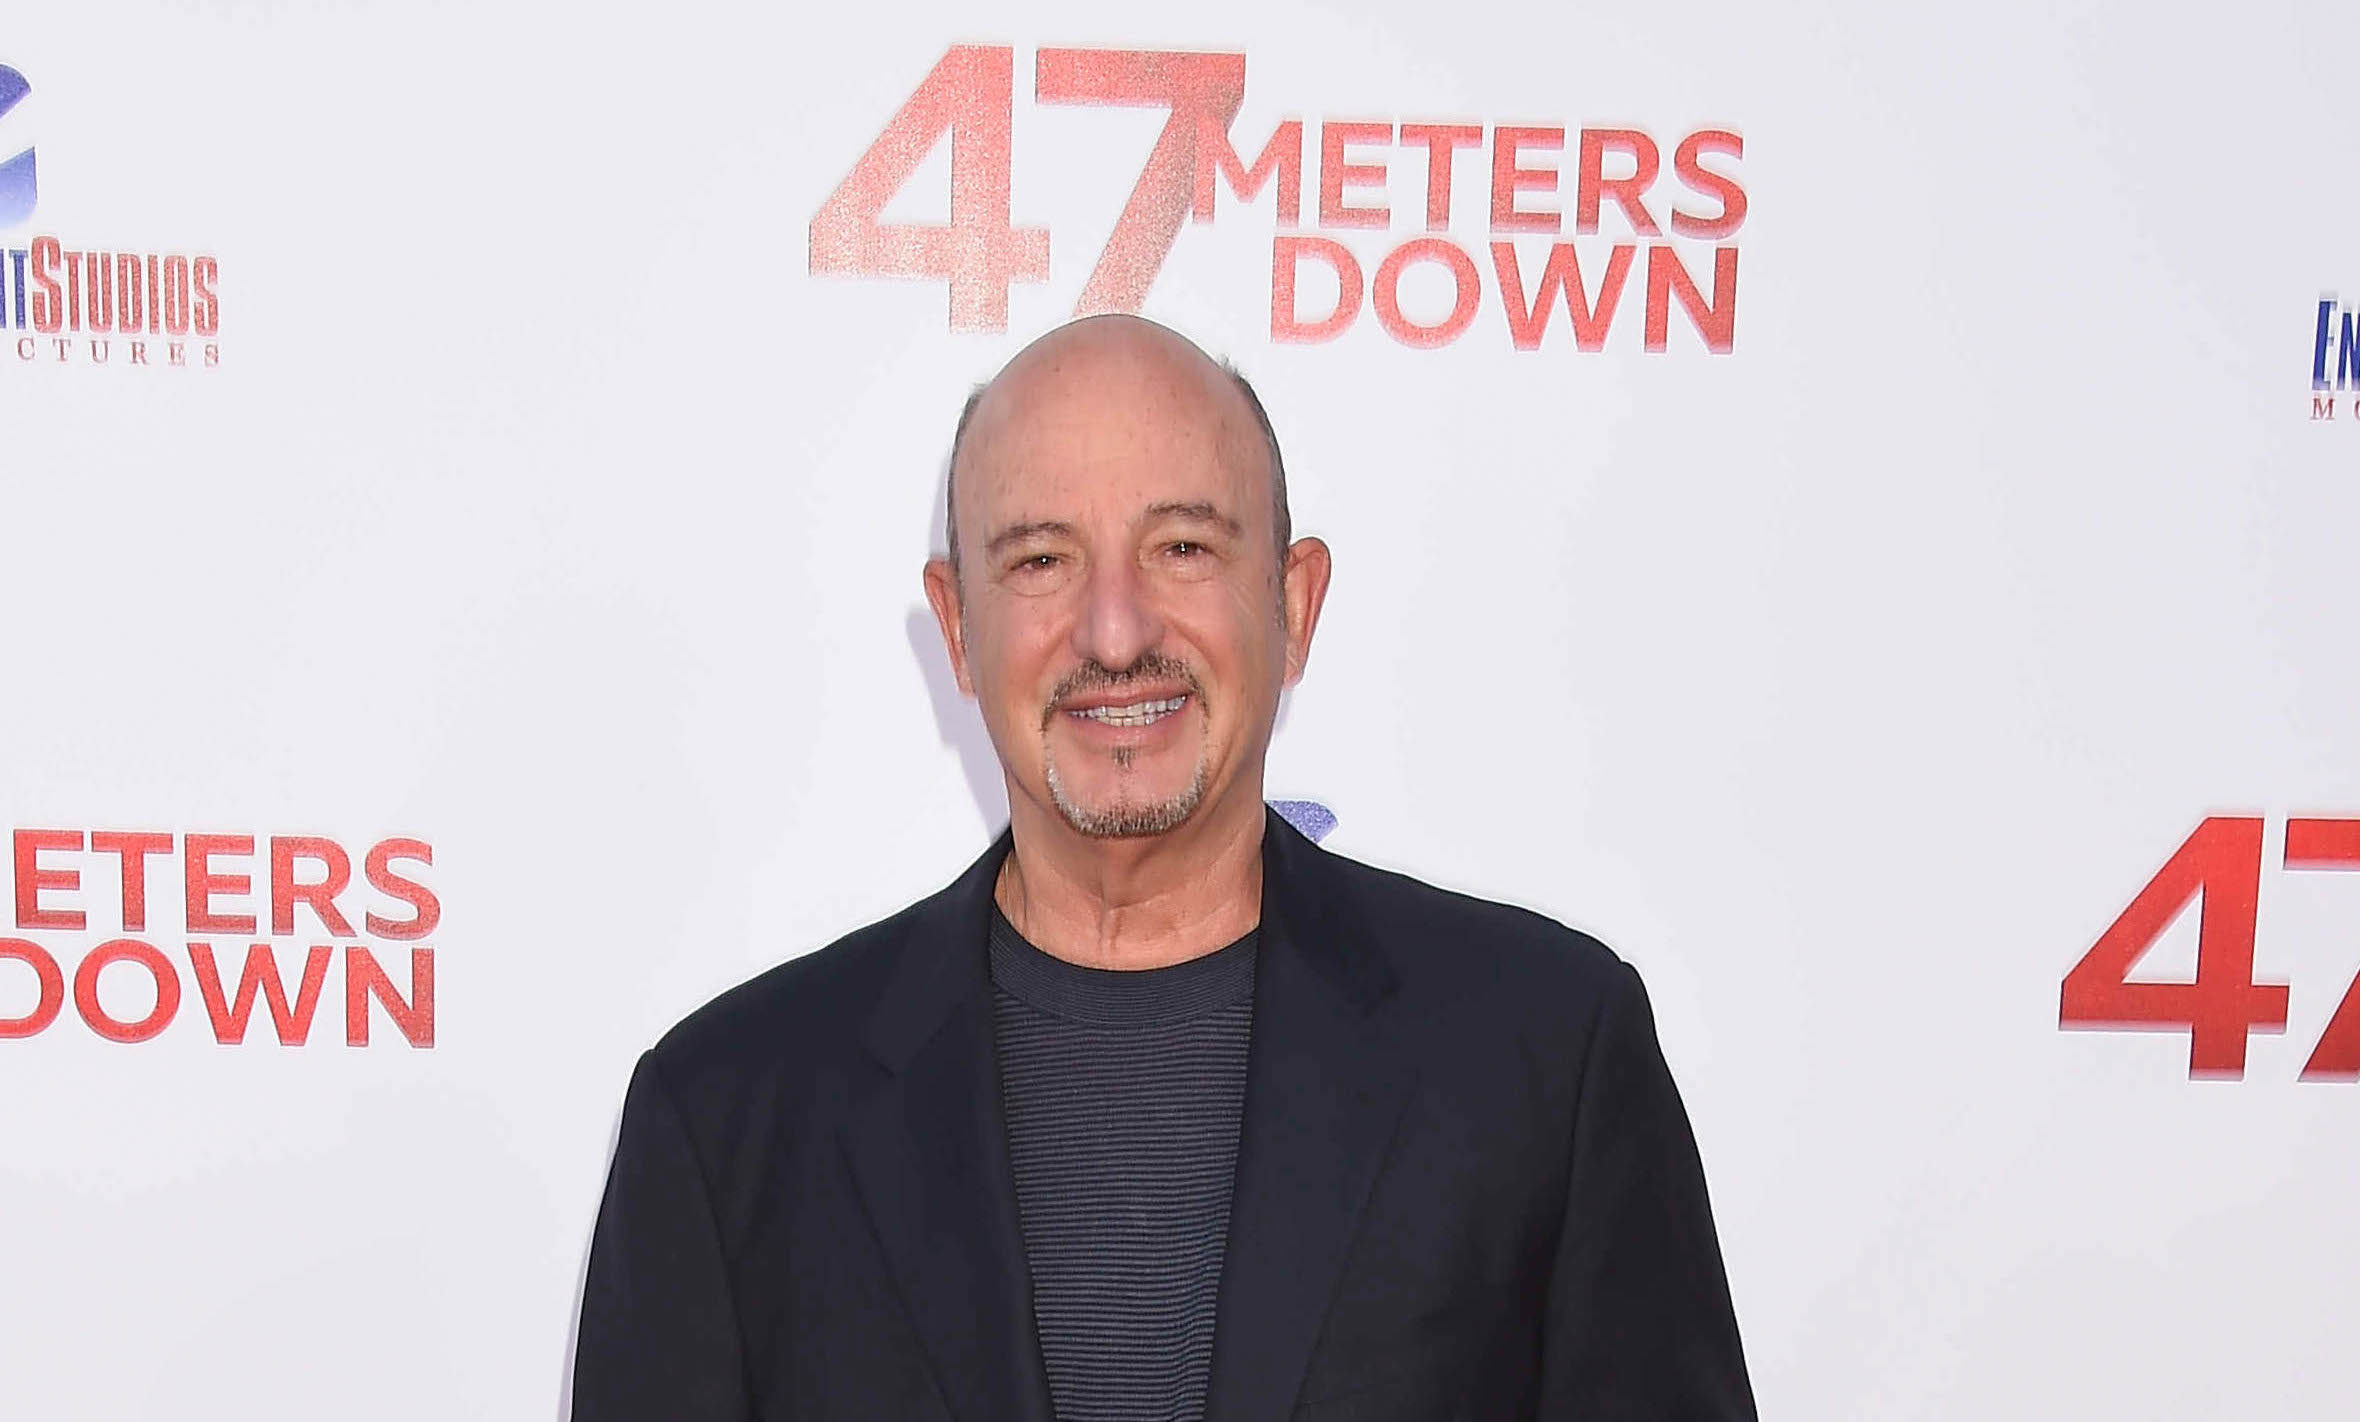 Mark Borde '47 Meters Down' film premiere, Los Angeles, USA - 12 Jun 2017